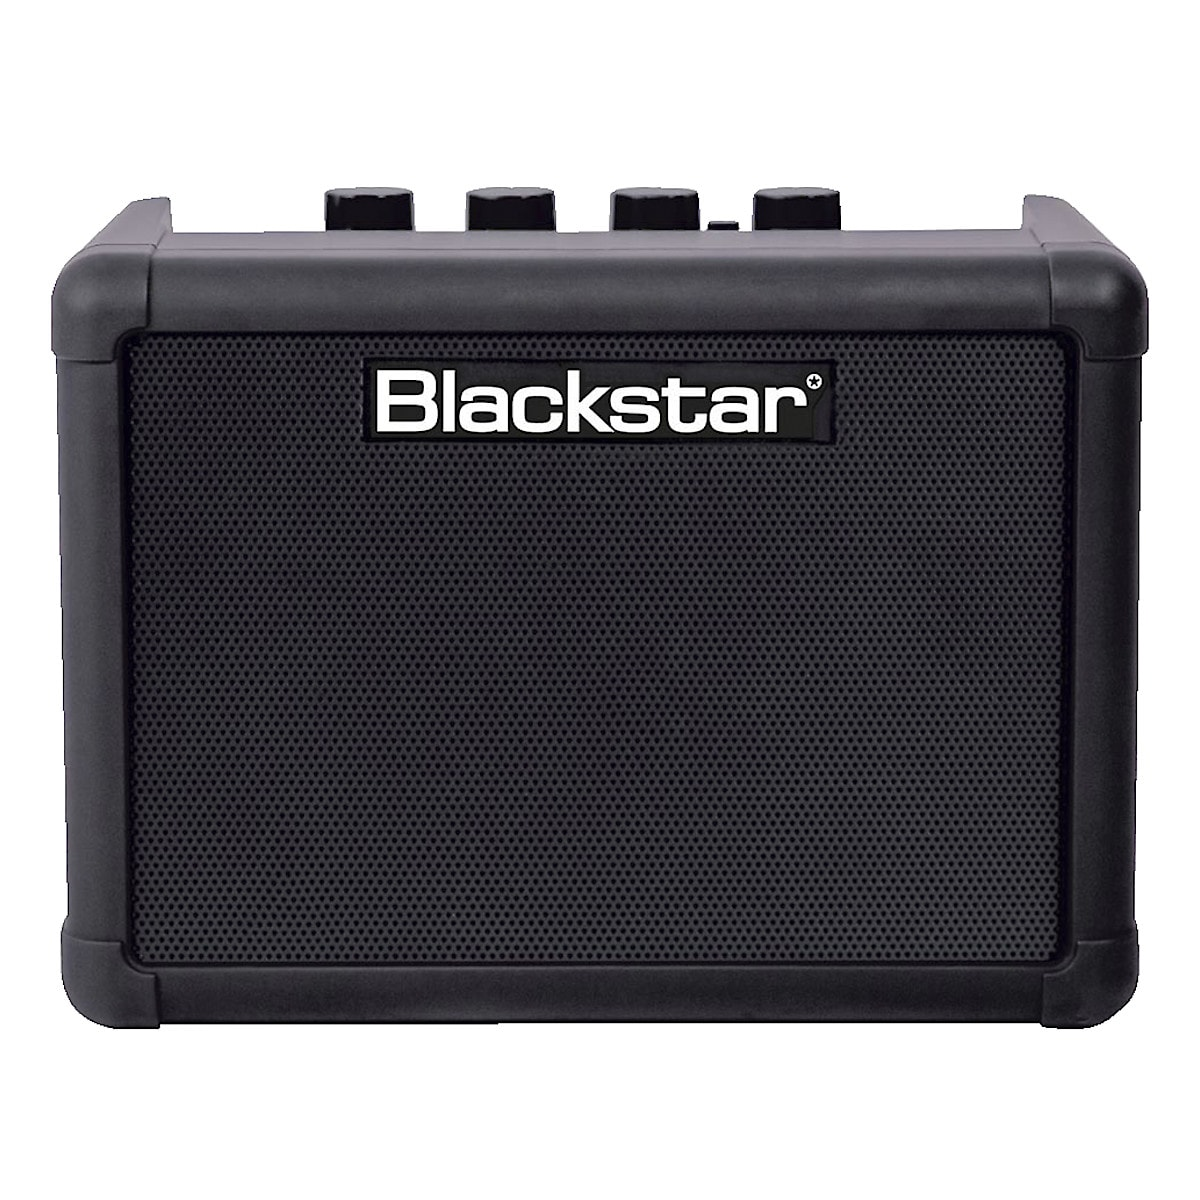 Minivahvistin Blackstar FLY 3 Bluetooth